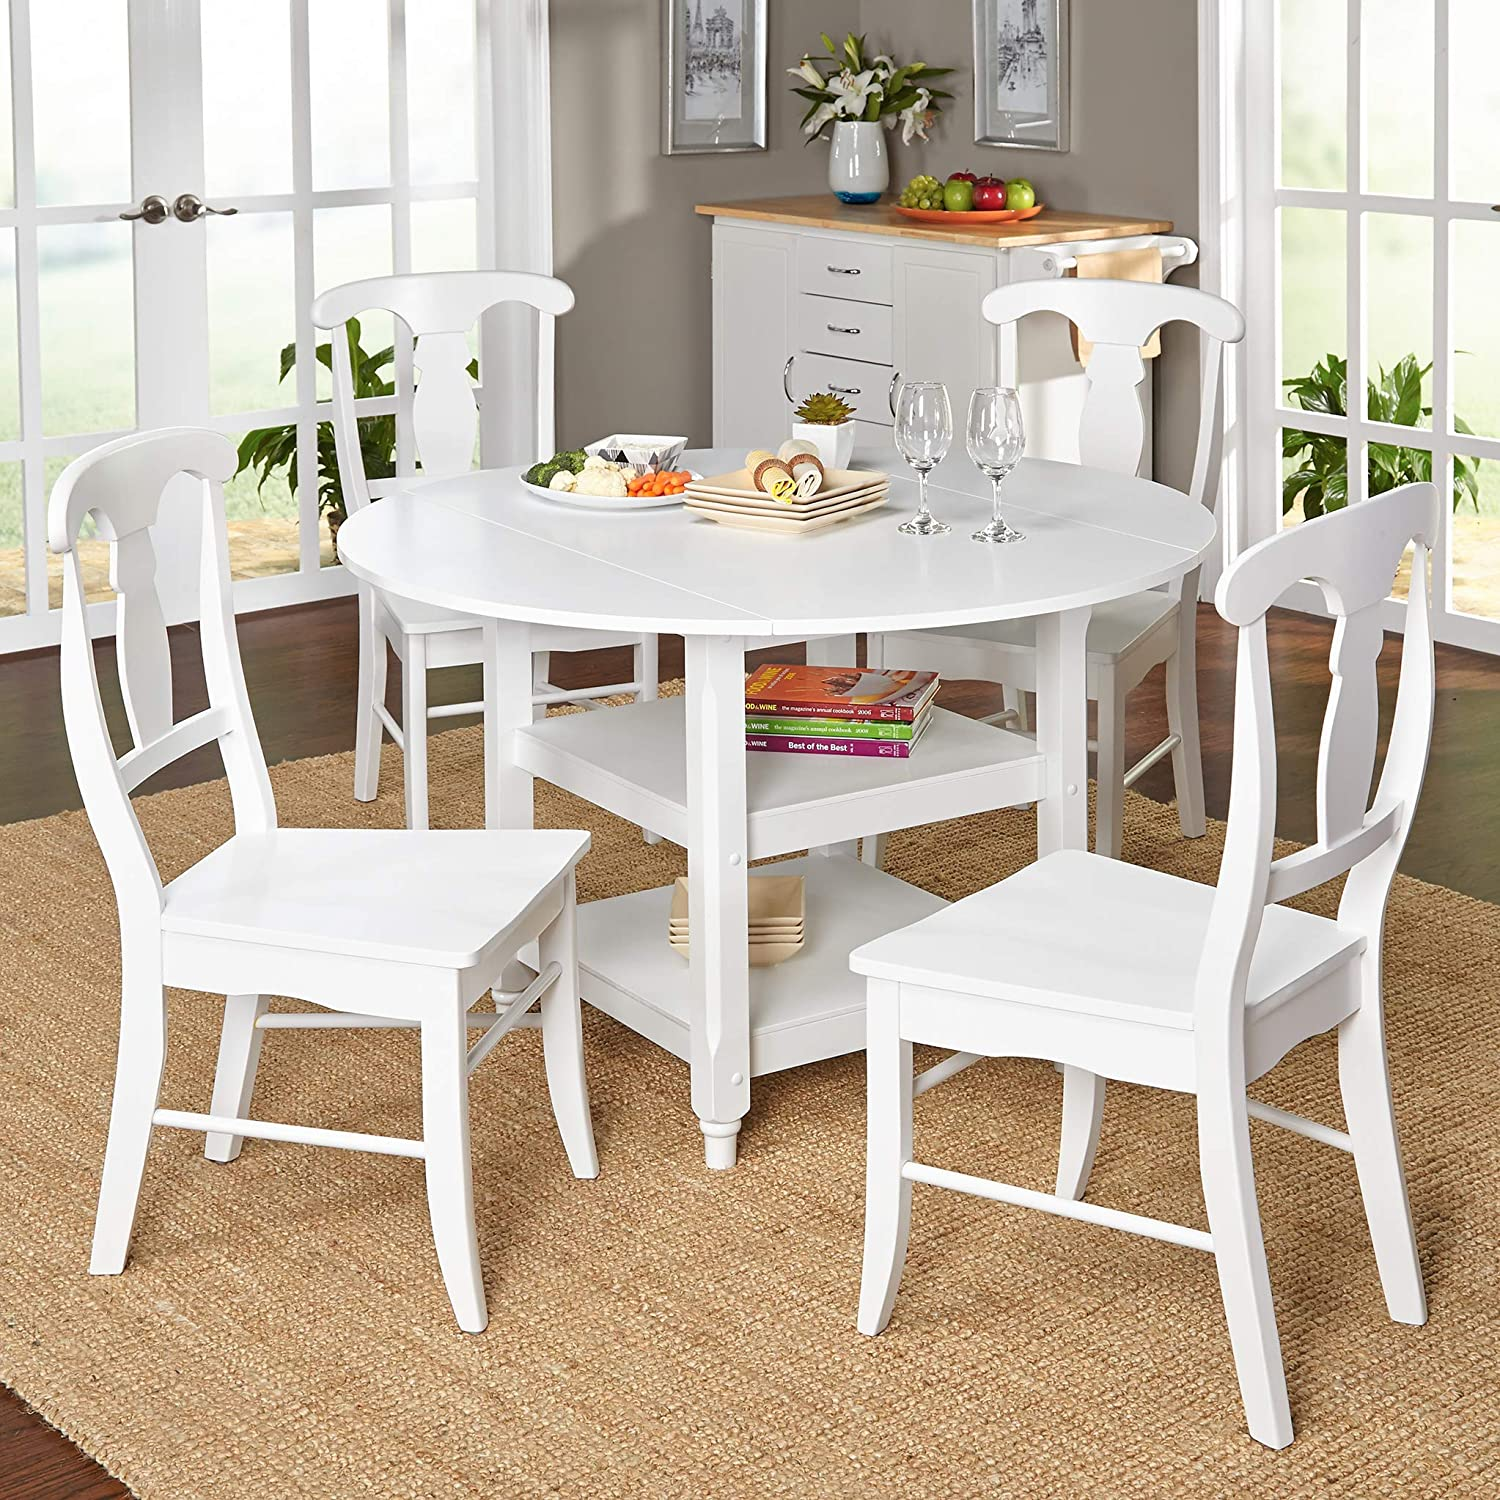 Target Marketing Systems Cottage Contemporary Extendable Dining Room Set with Shelves Underneath, 5 Piece, White